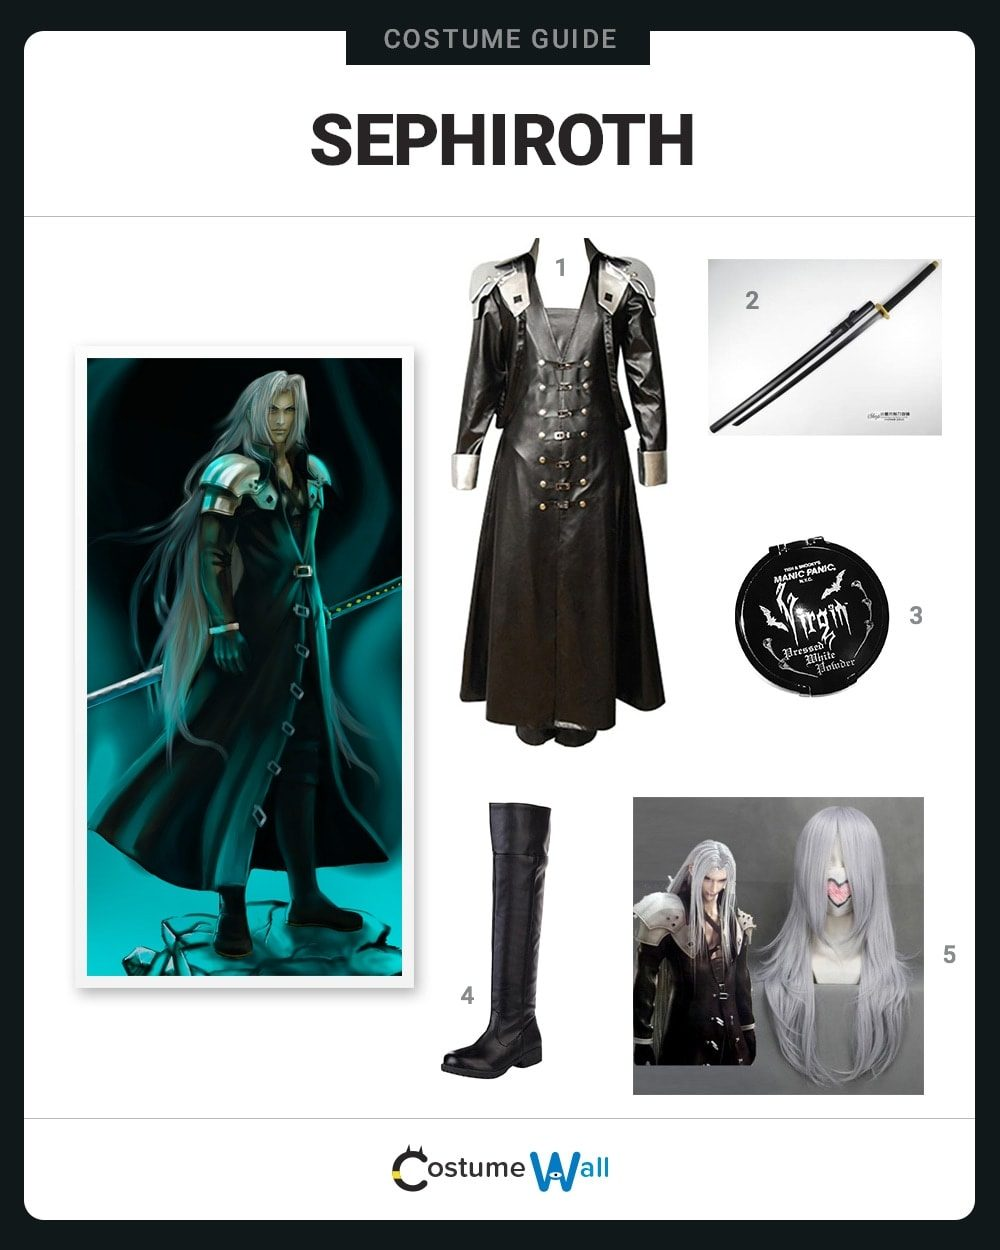 Sephiroth Costume Guide